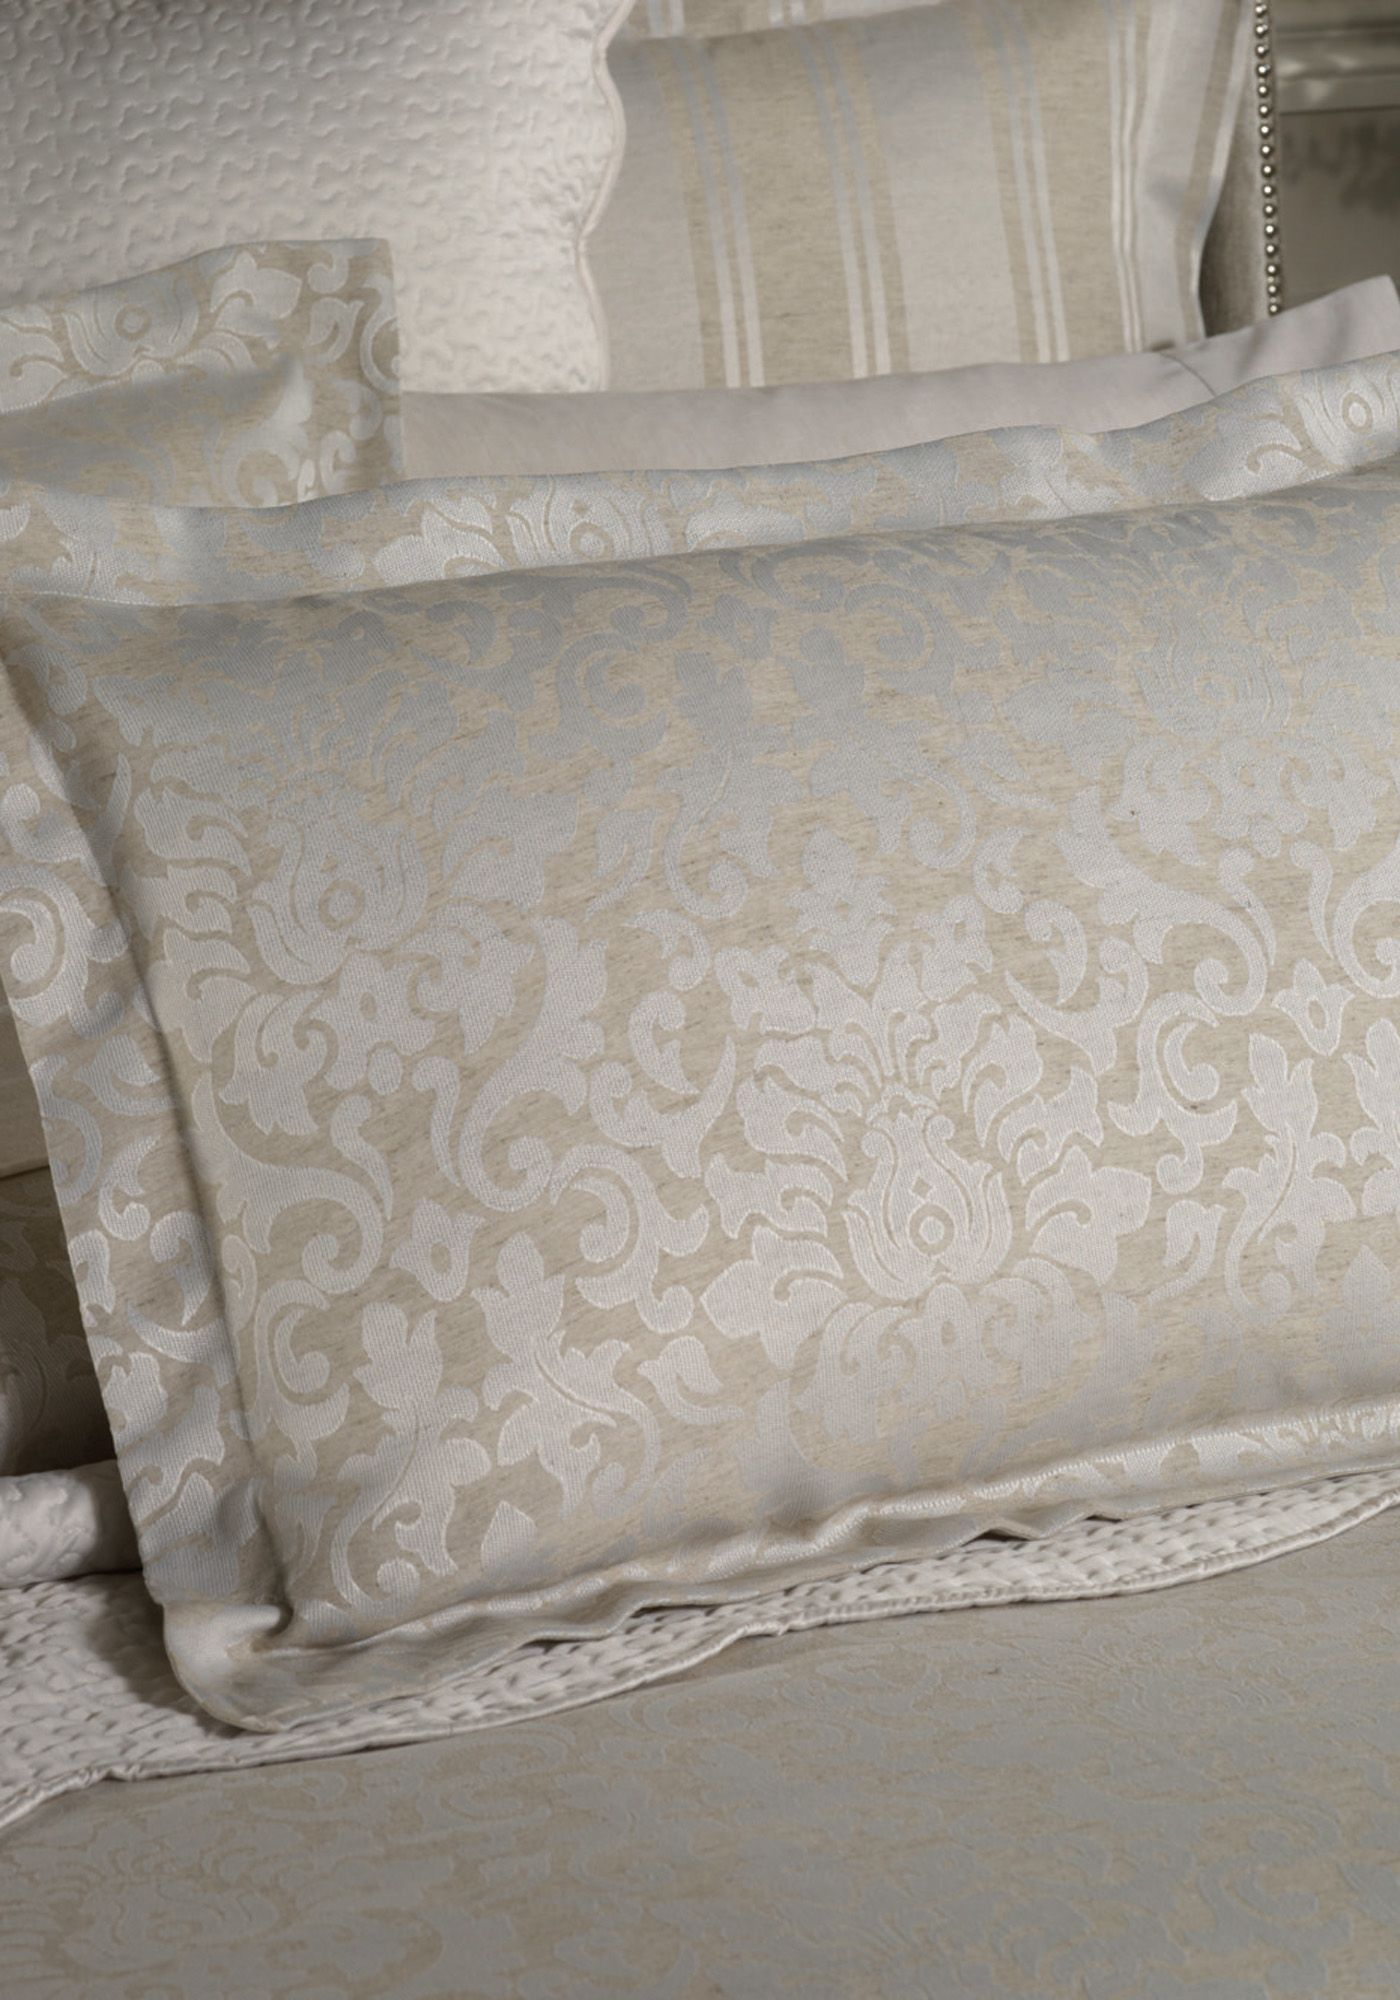 Fenimore oatmeal tailored pillowcase pair